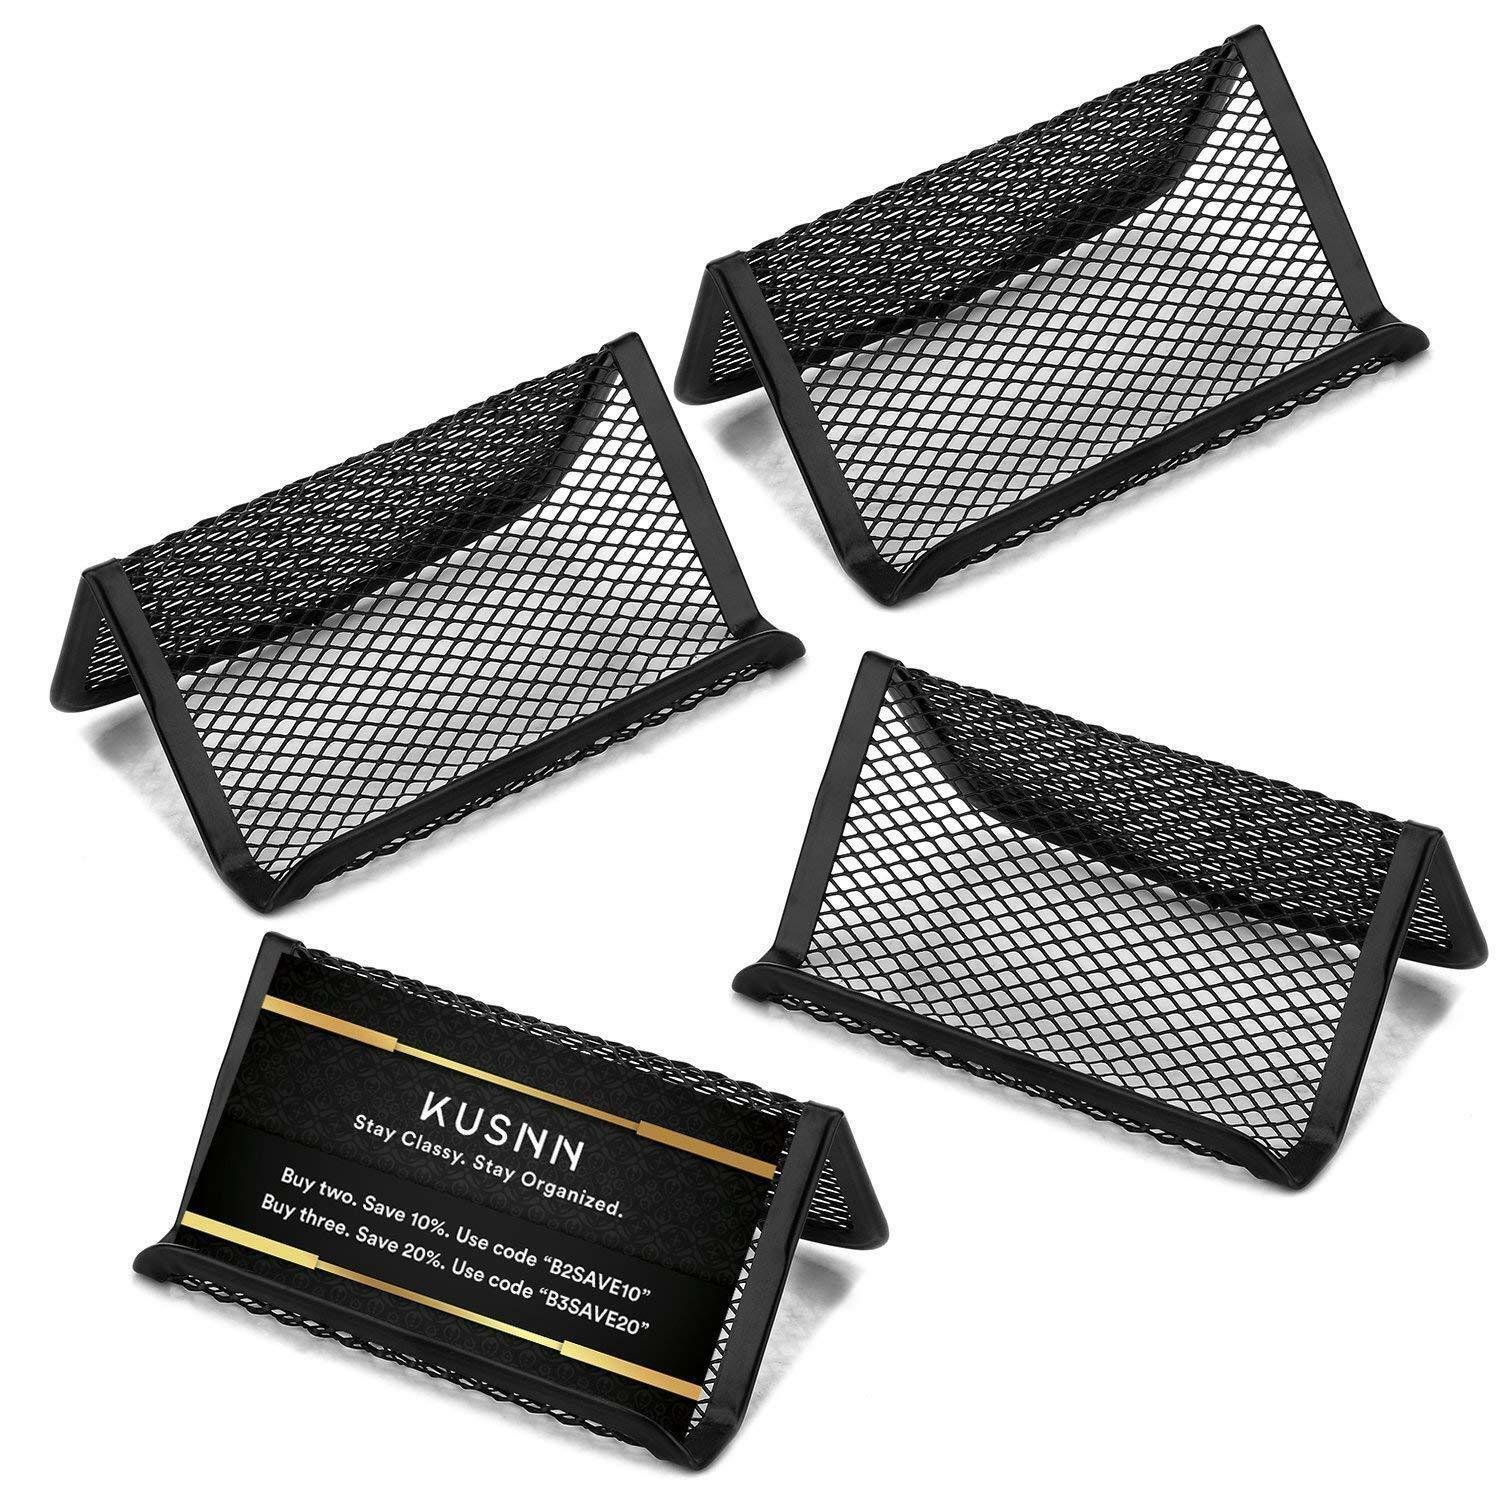 Primary image for 4 pack Mesh Metal Business Card Holder Stand & Cell Phone holder Gift Ideal